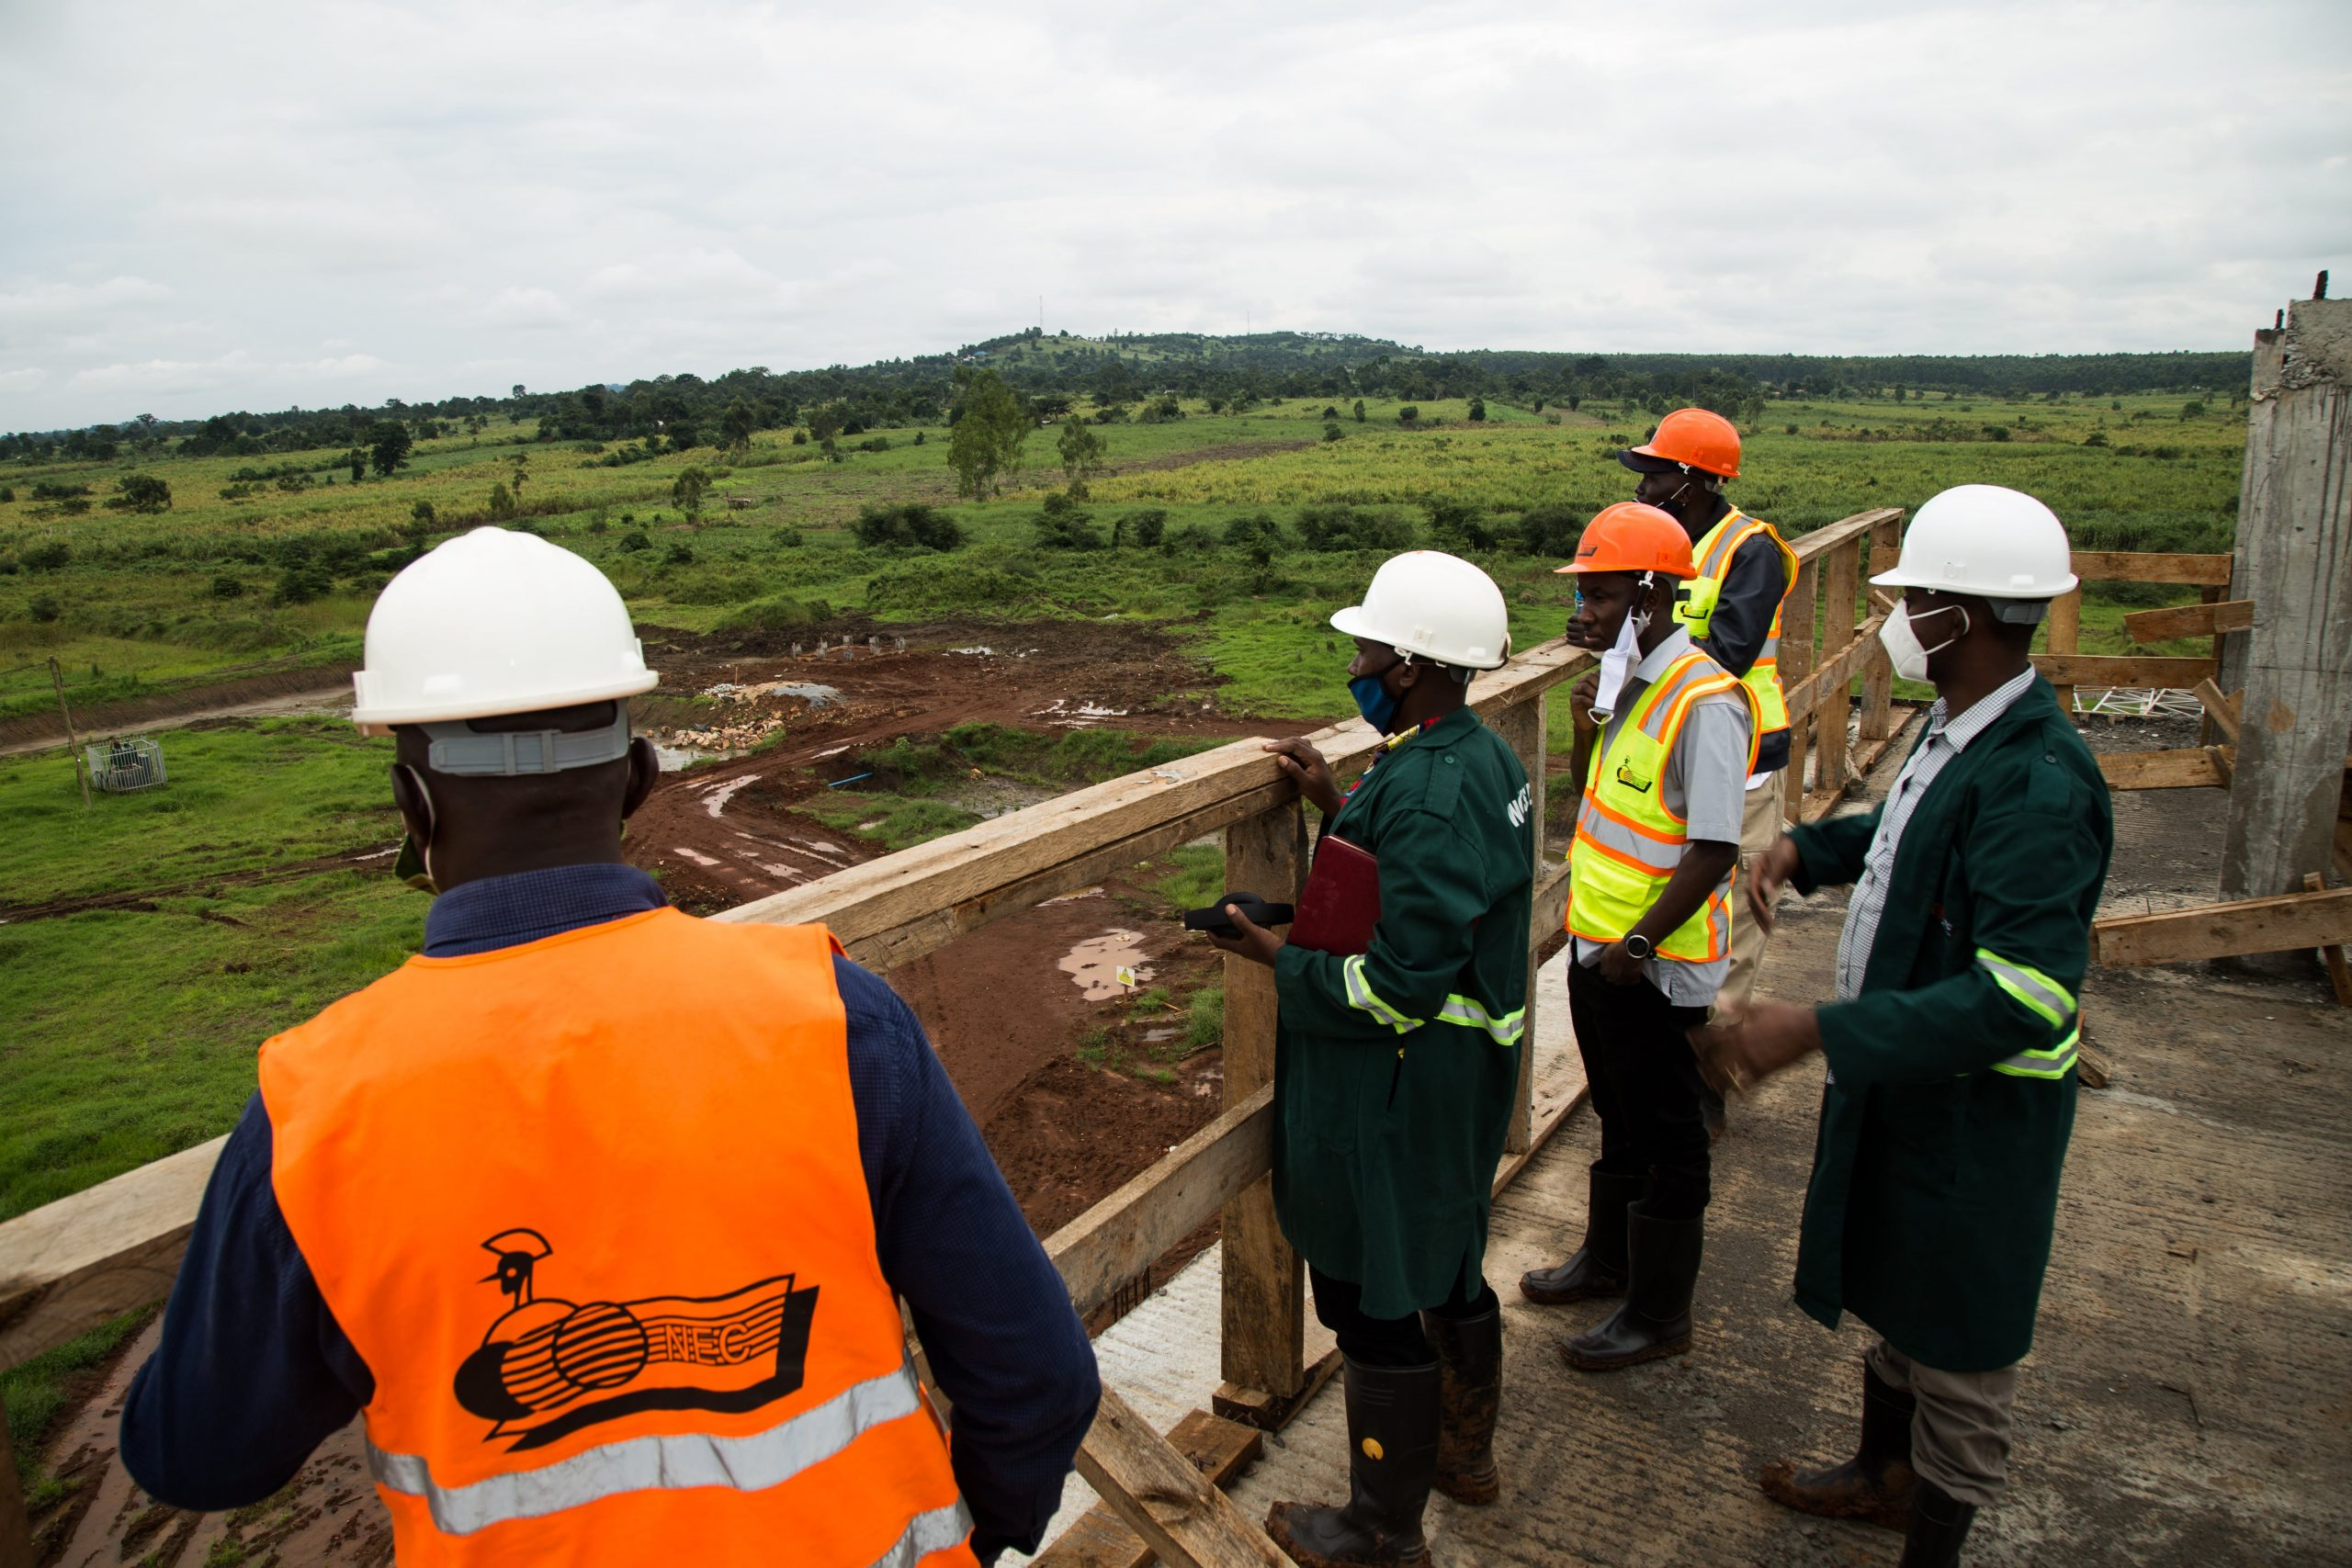 ERB and Kiira Motors Corporation information and stakeholder engagement visit to the Kiira Vehicle Plant Site, at the Jinja Industrial and Business Park on Saturday 17th October 2020.